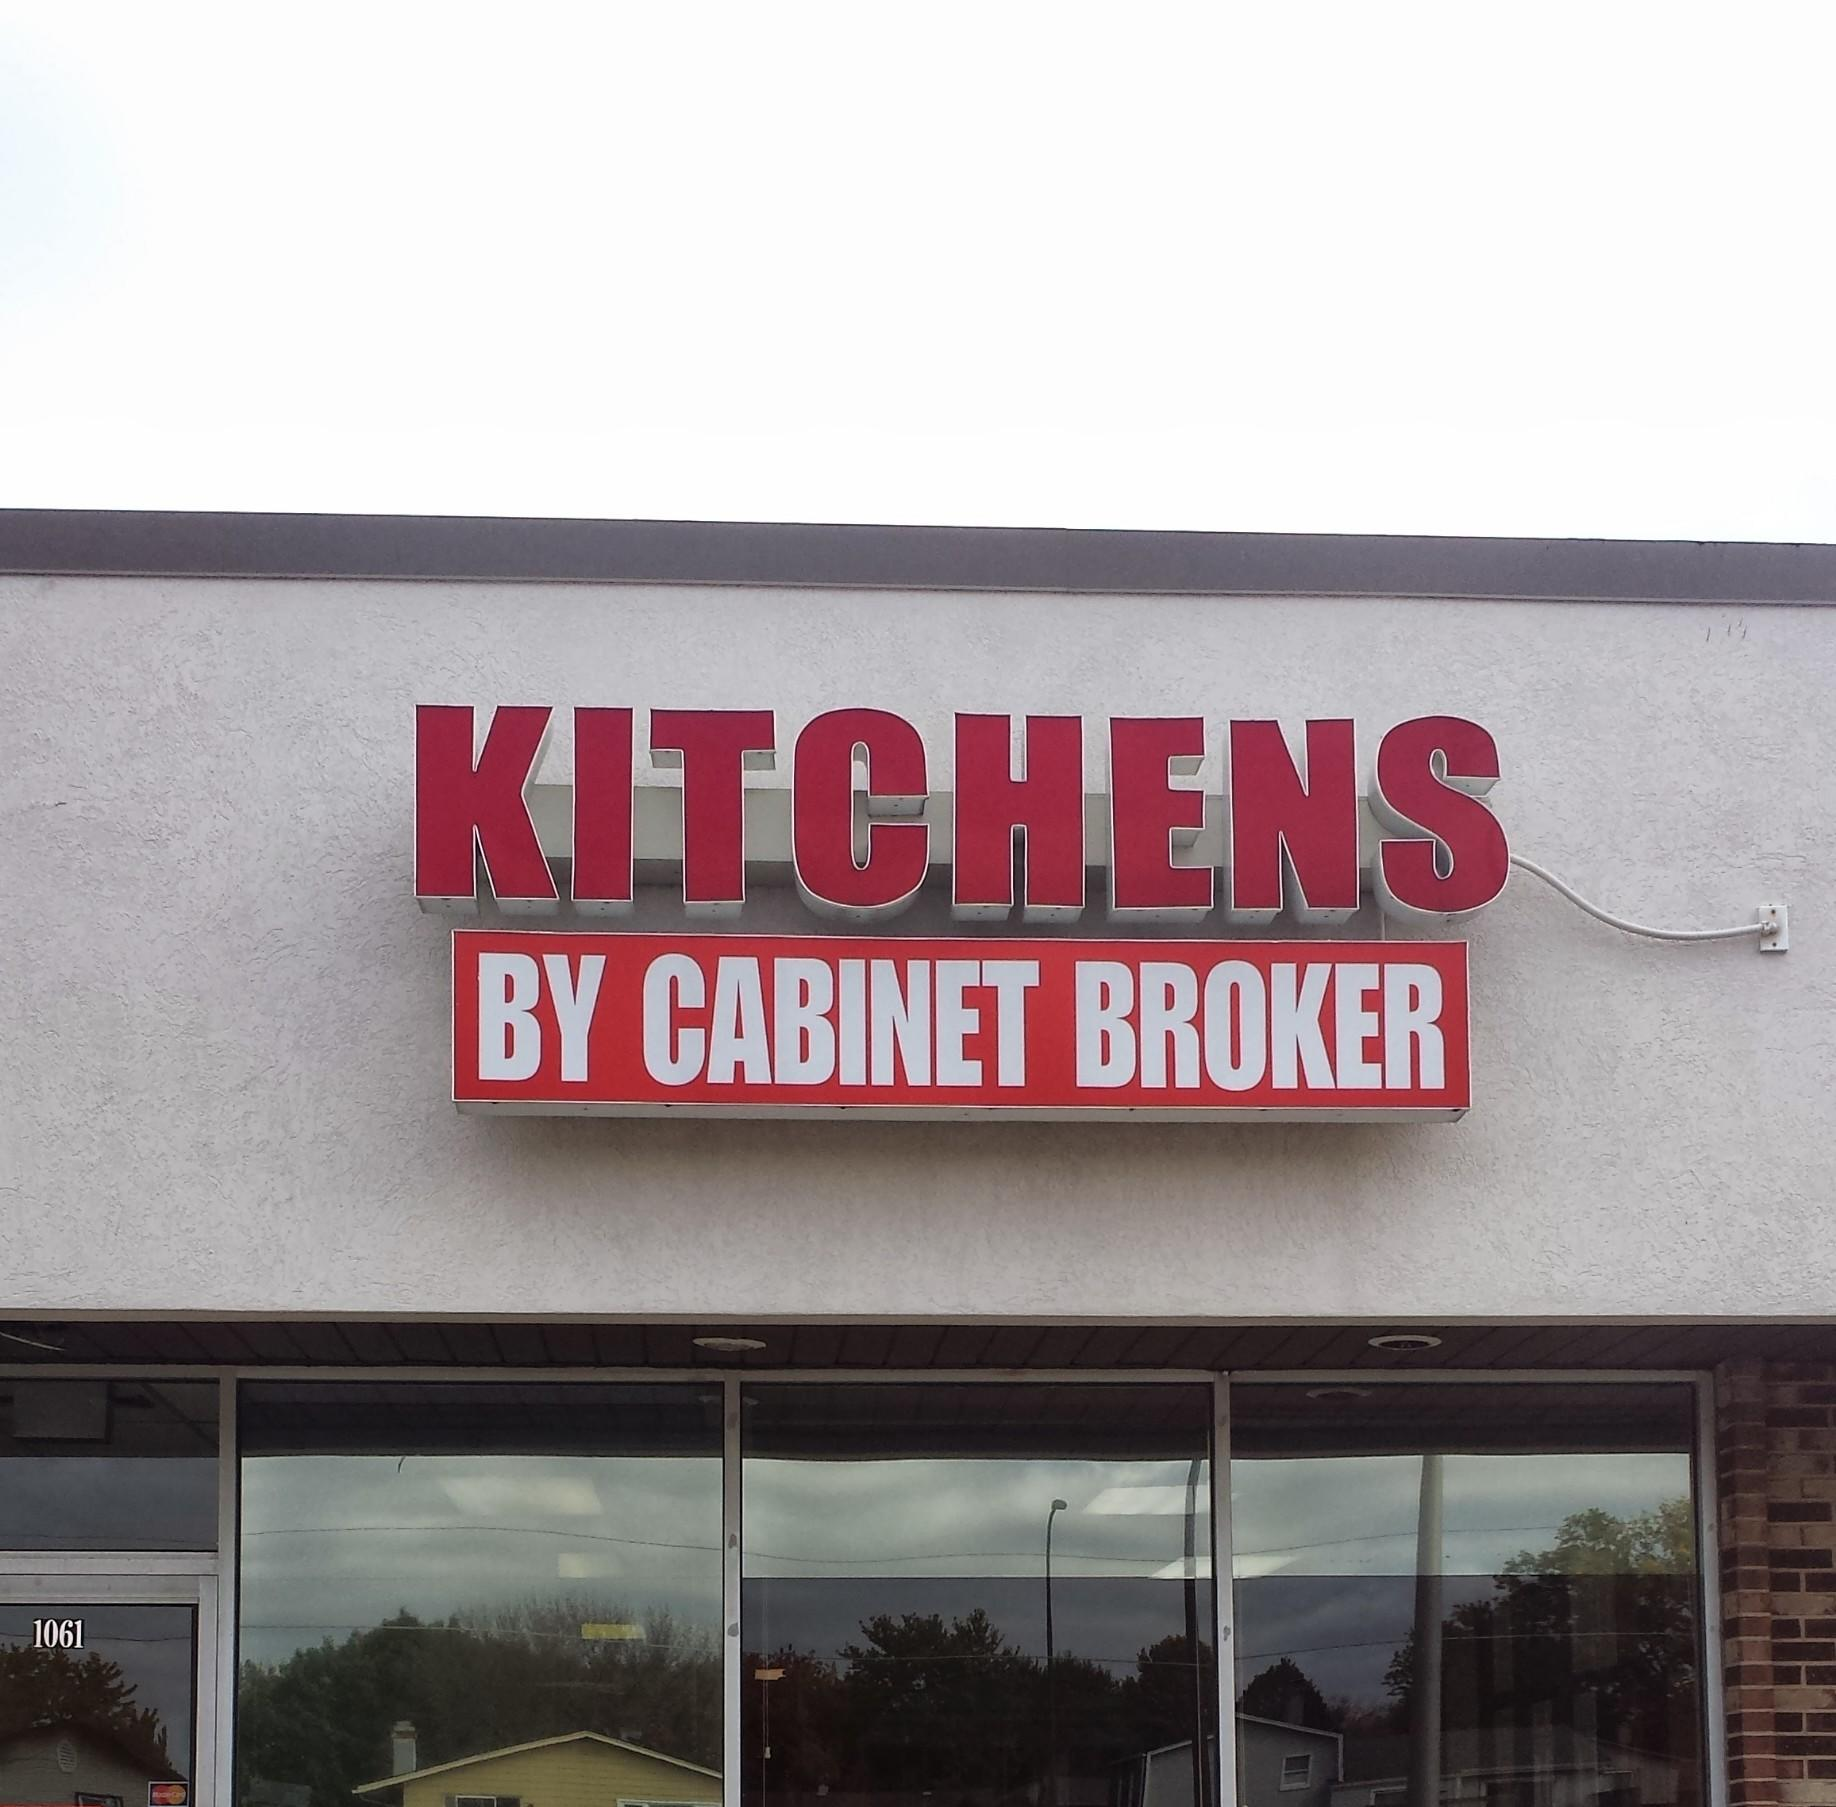 Cabinet broker in elk grove village il 60007 for Kitchen cabinets 60007